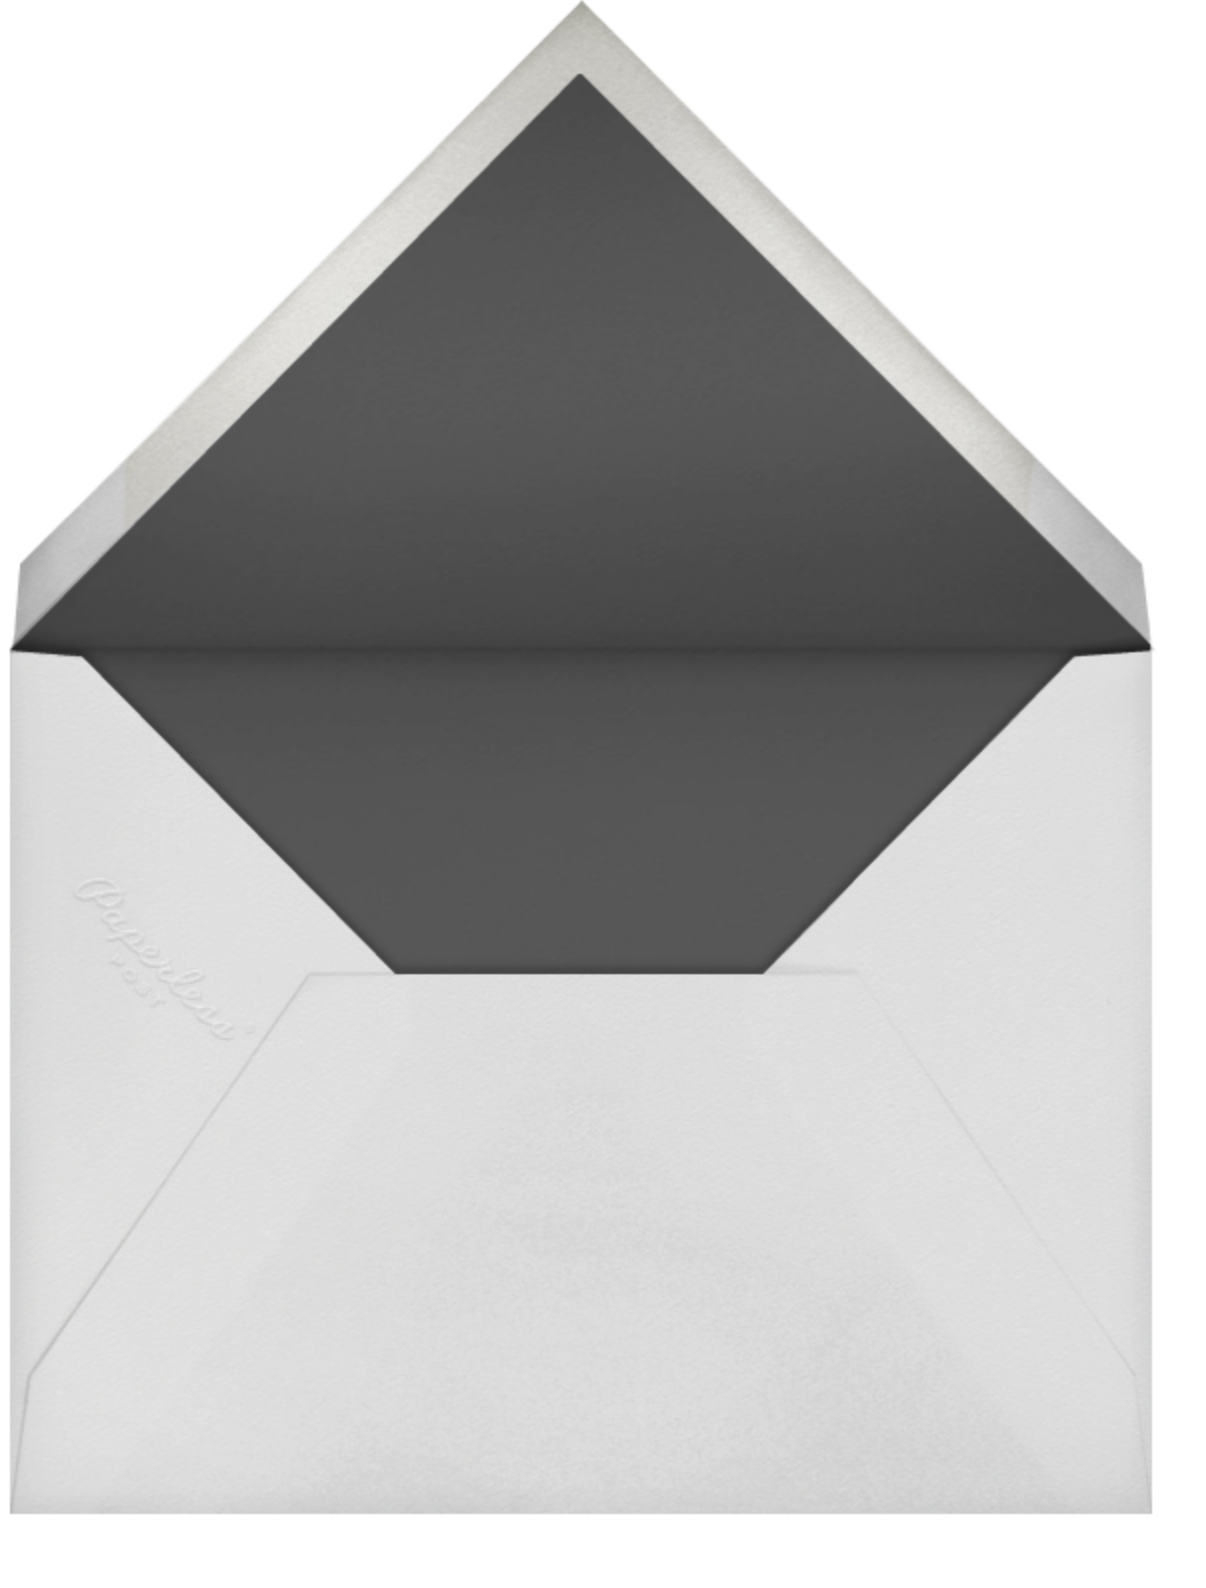 Tangelo (Invitation) - Paperless Post - All - envelope back